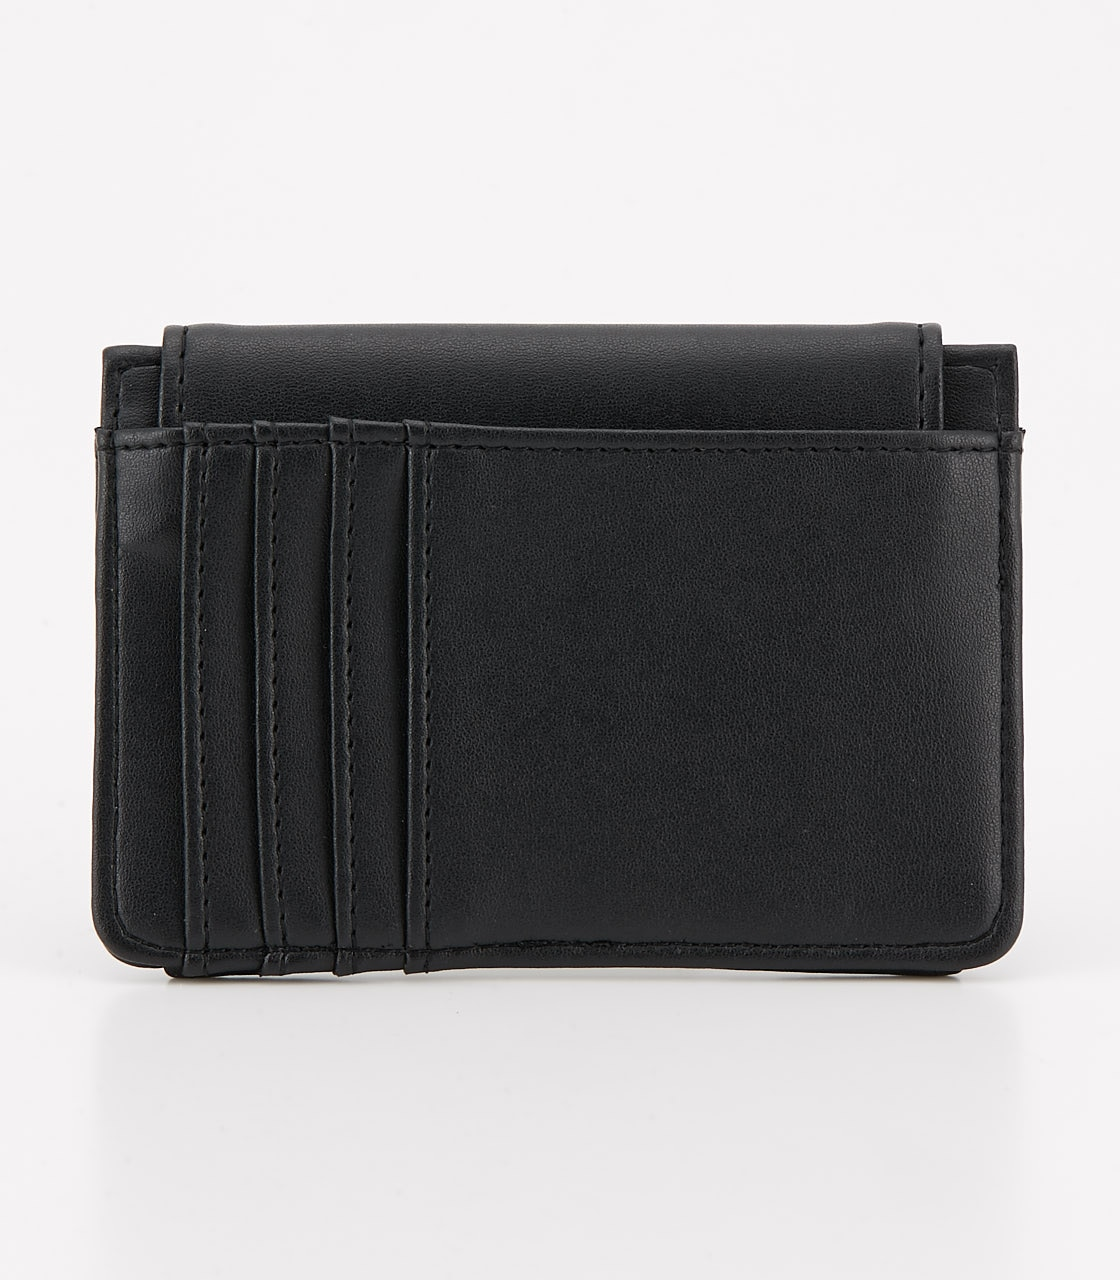 【AZUL BY MOUSSY】COIN+CARD PURSE 詳細画像 BLK 2